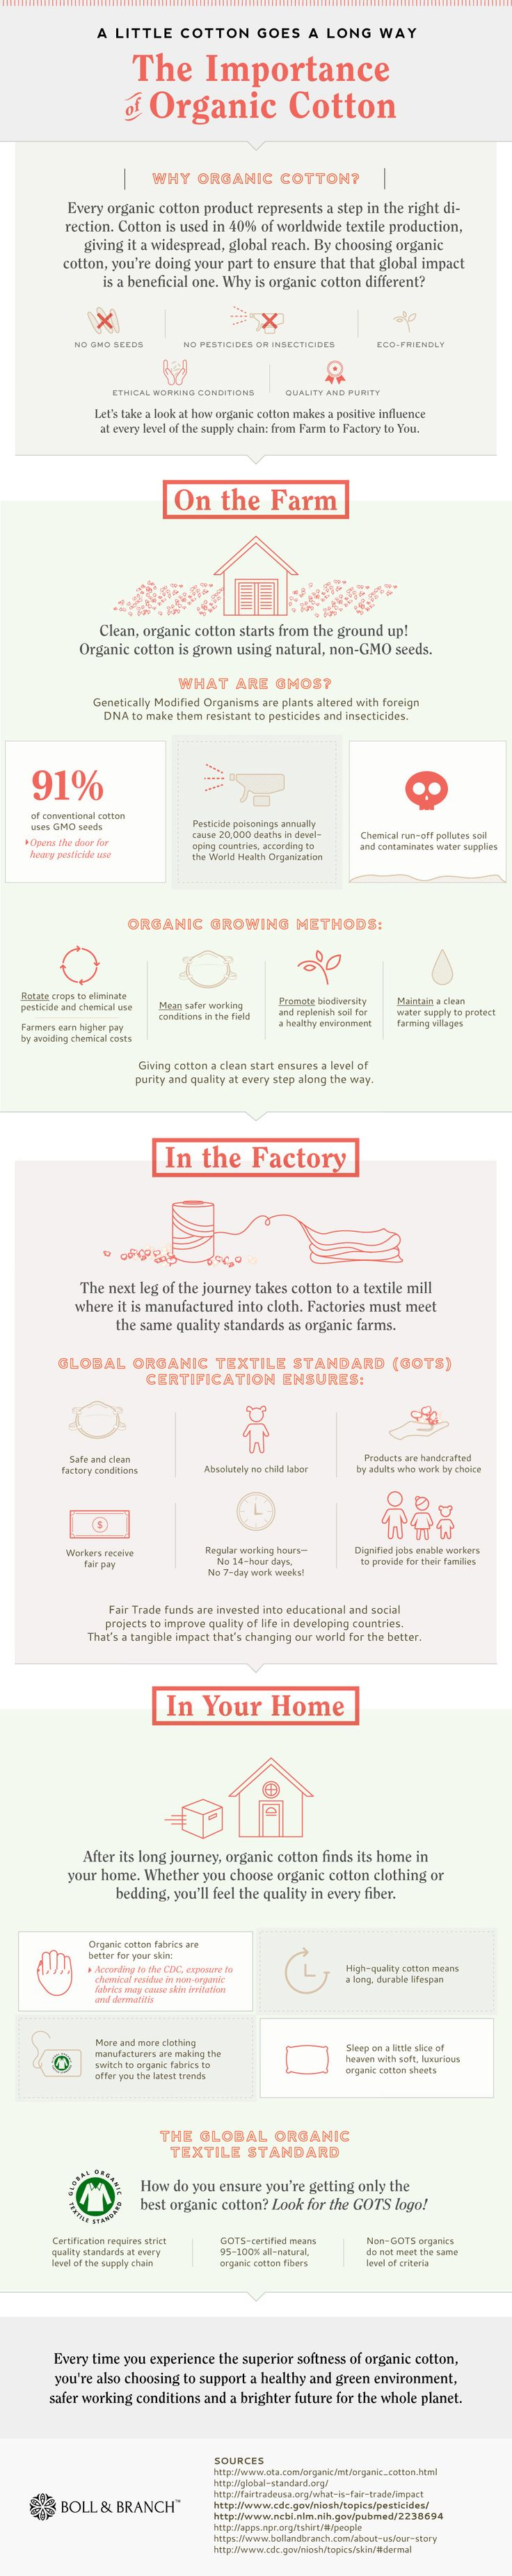 The-Important-of-Organic-Cotton-Infographic-Boll-and-Branch